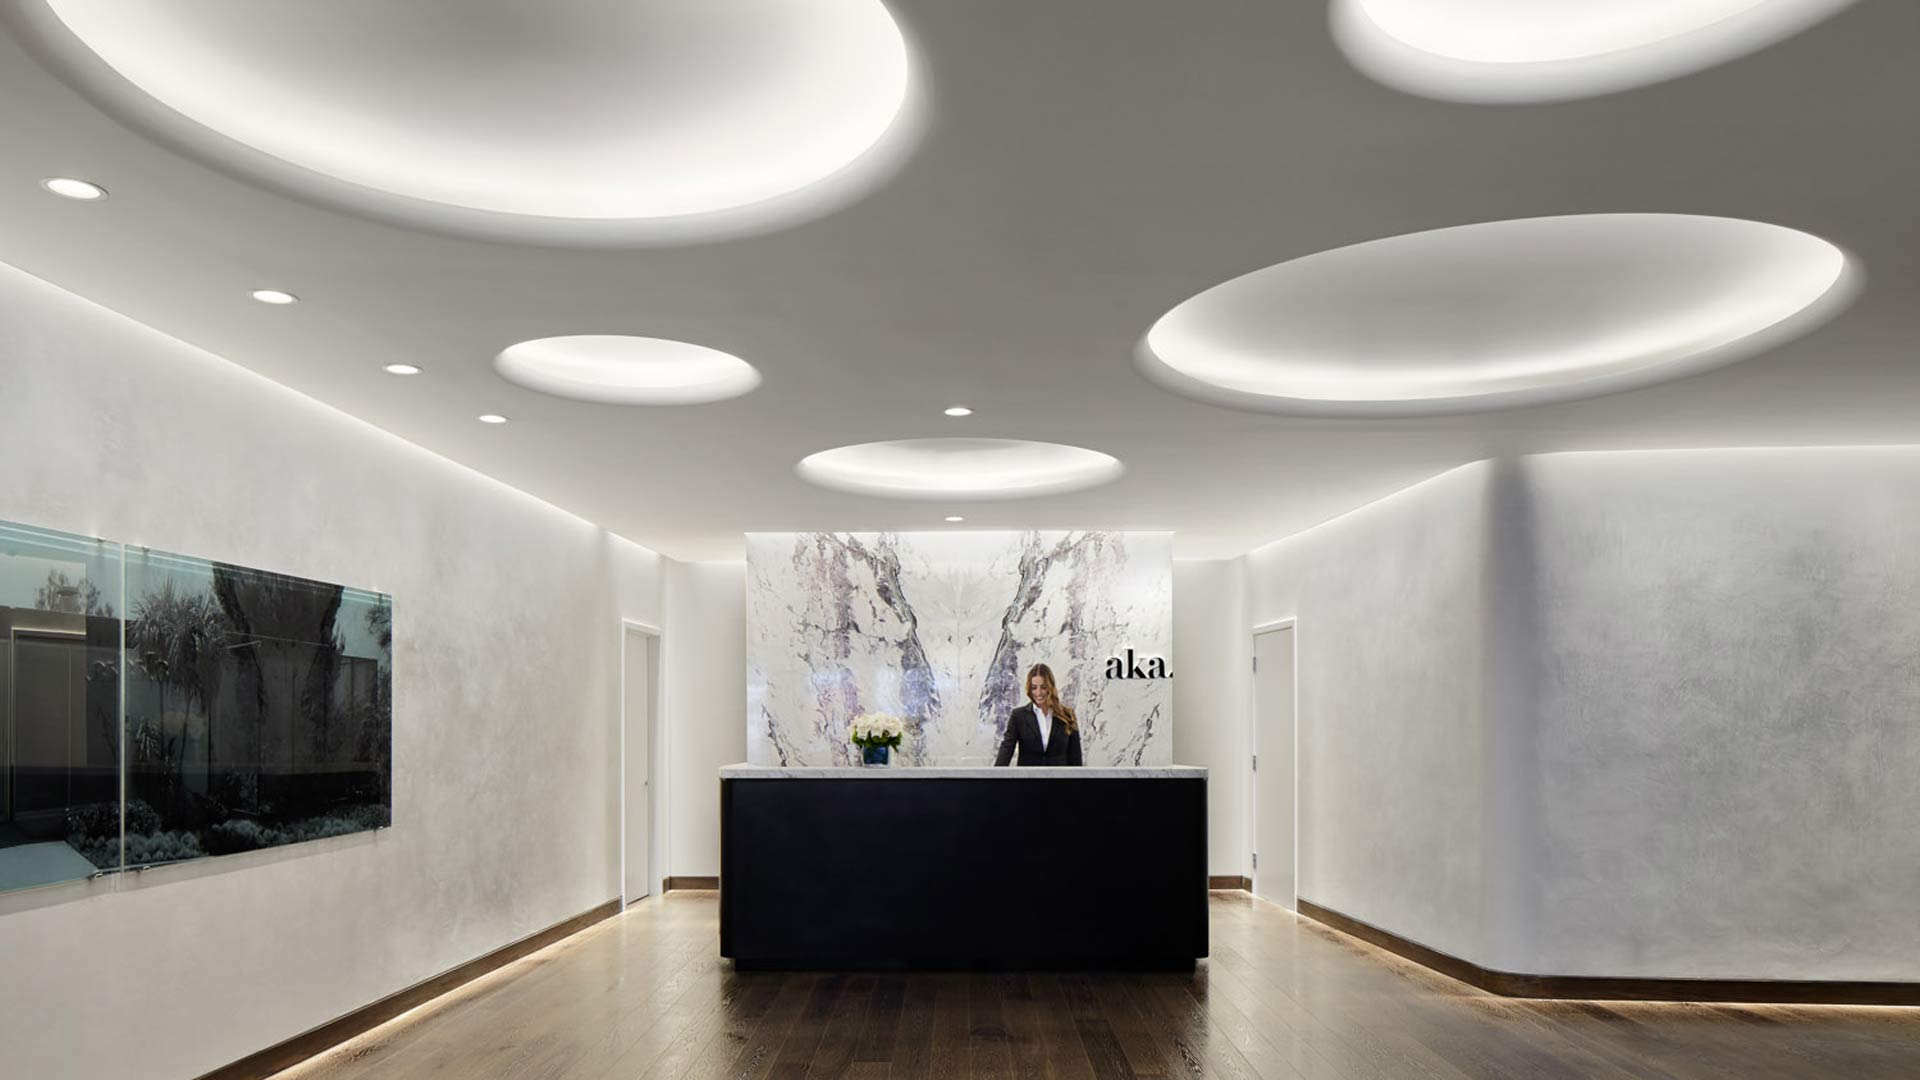 Oculus Light Studio | An architectural lighting design firm